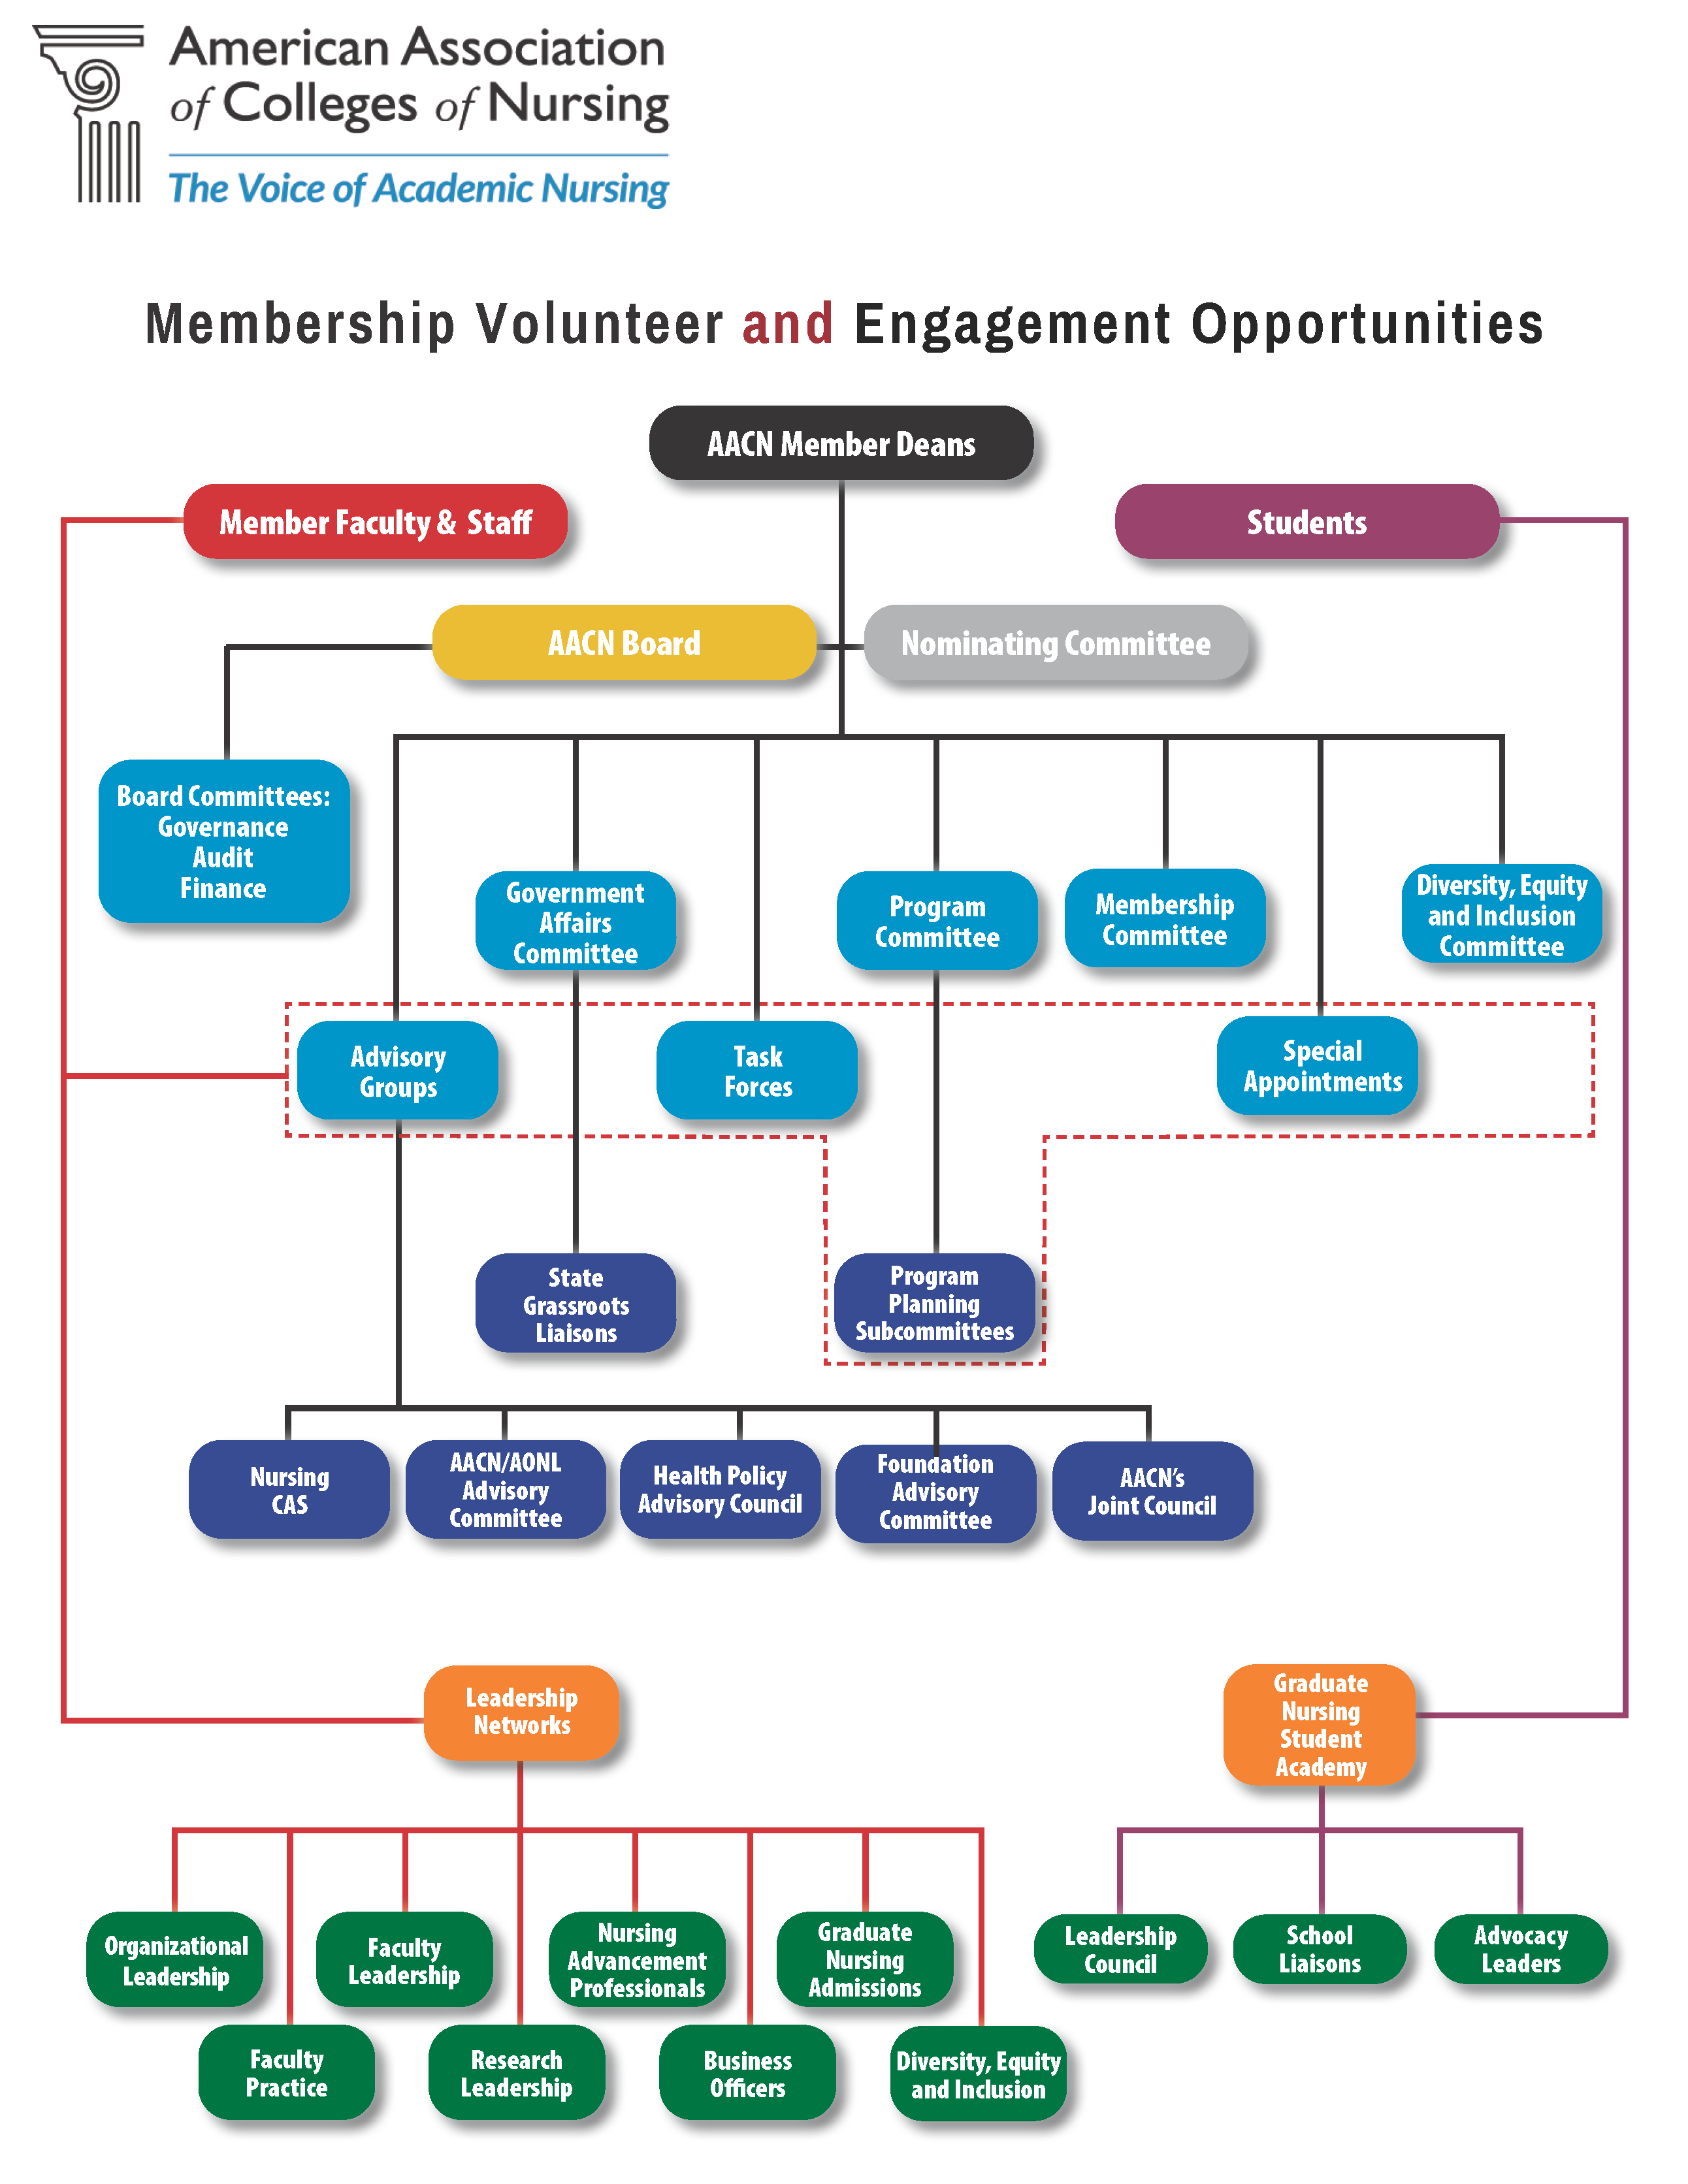 American association of colleges of nursing aacn membership engagement opportunities at a glance malvernweather Image collections